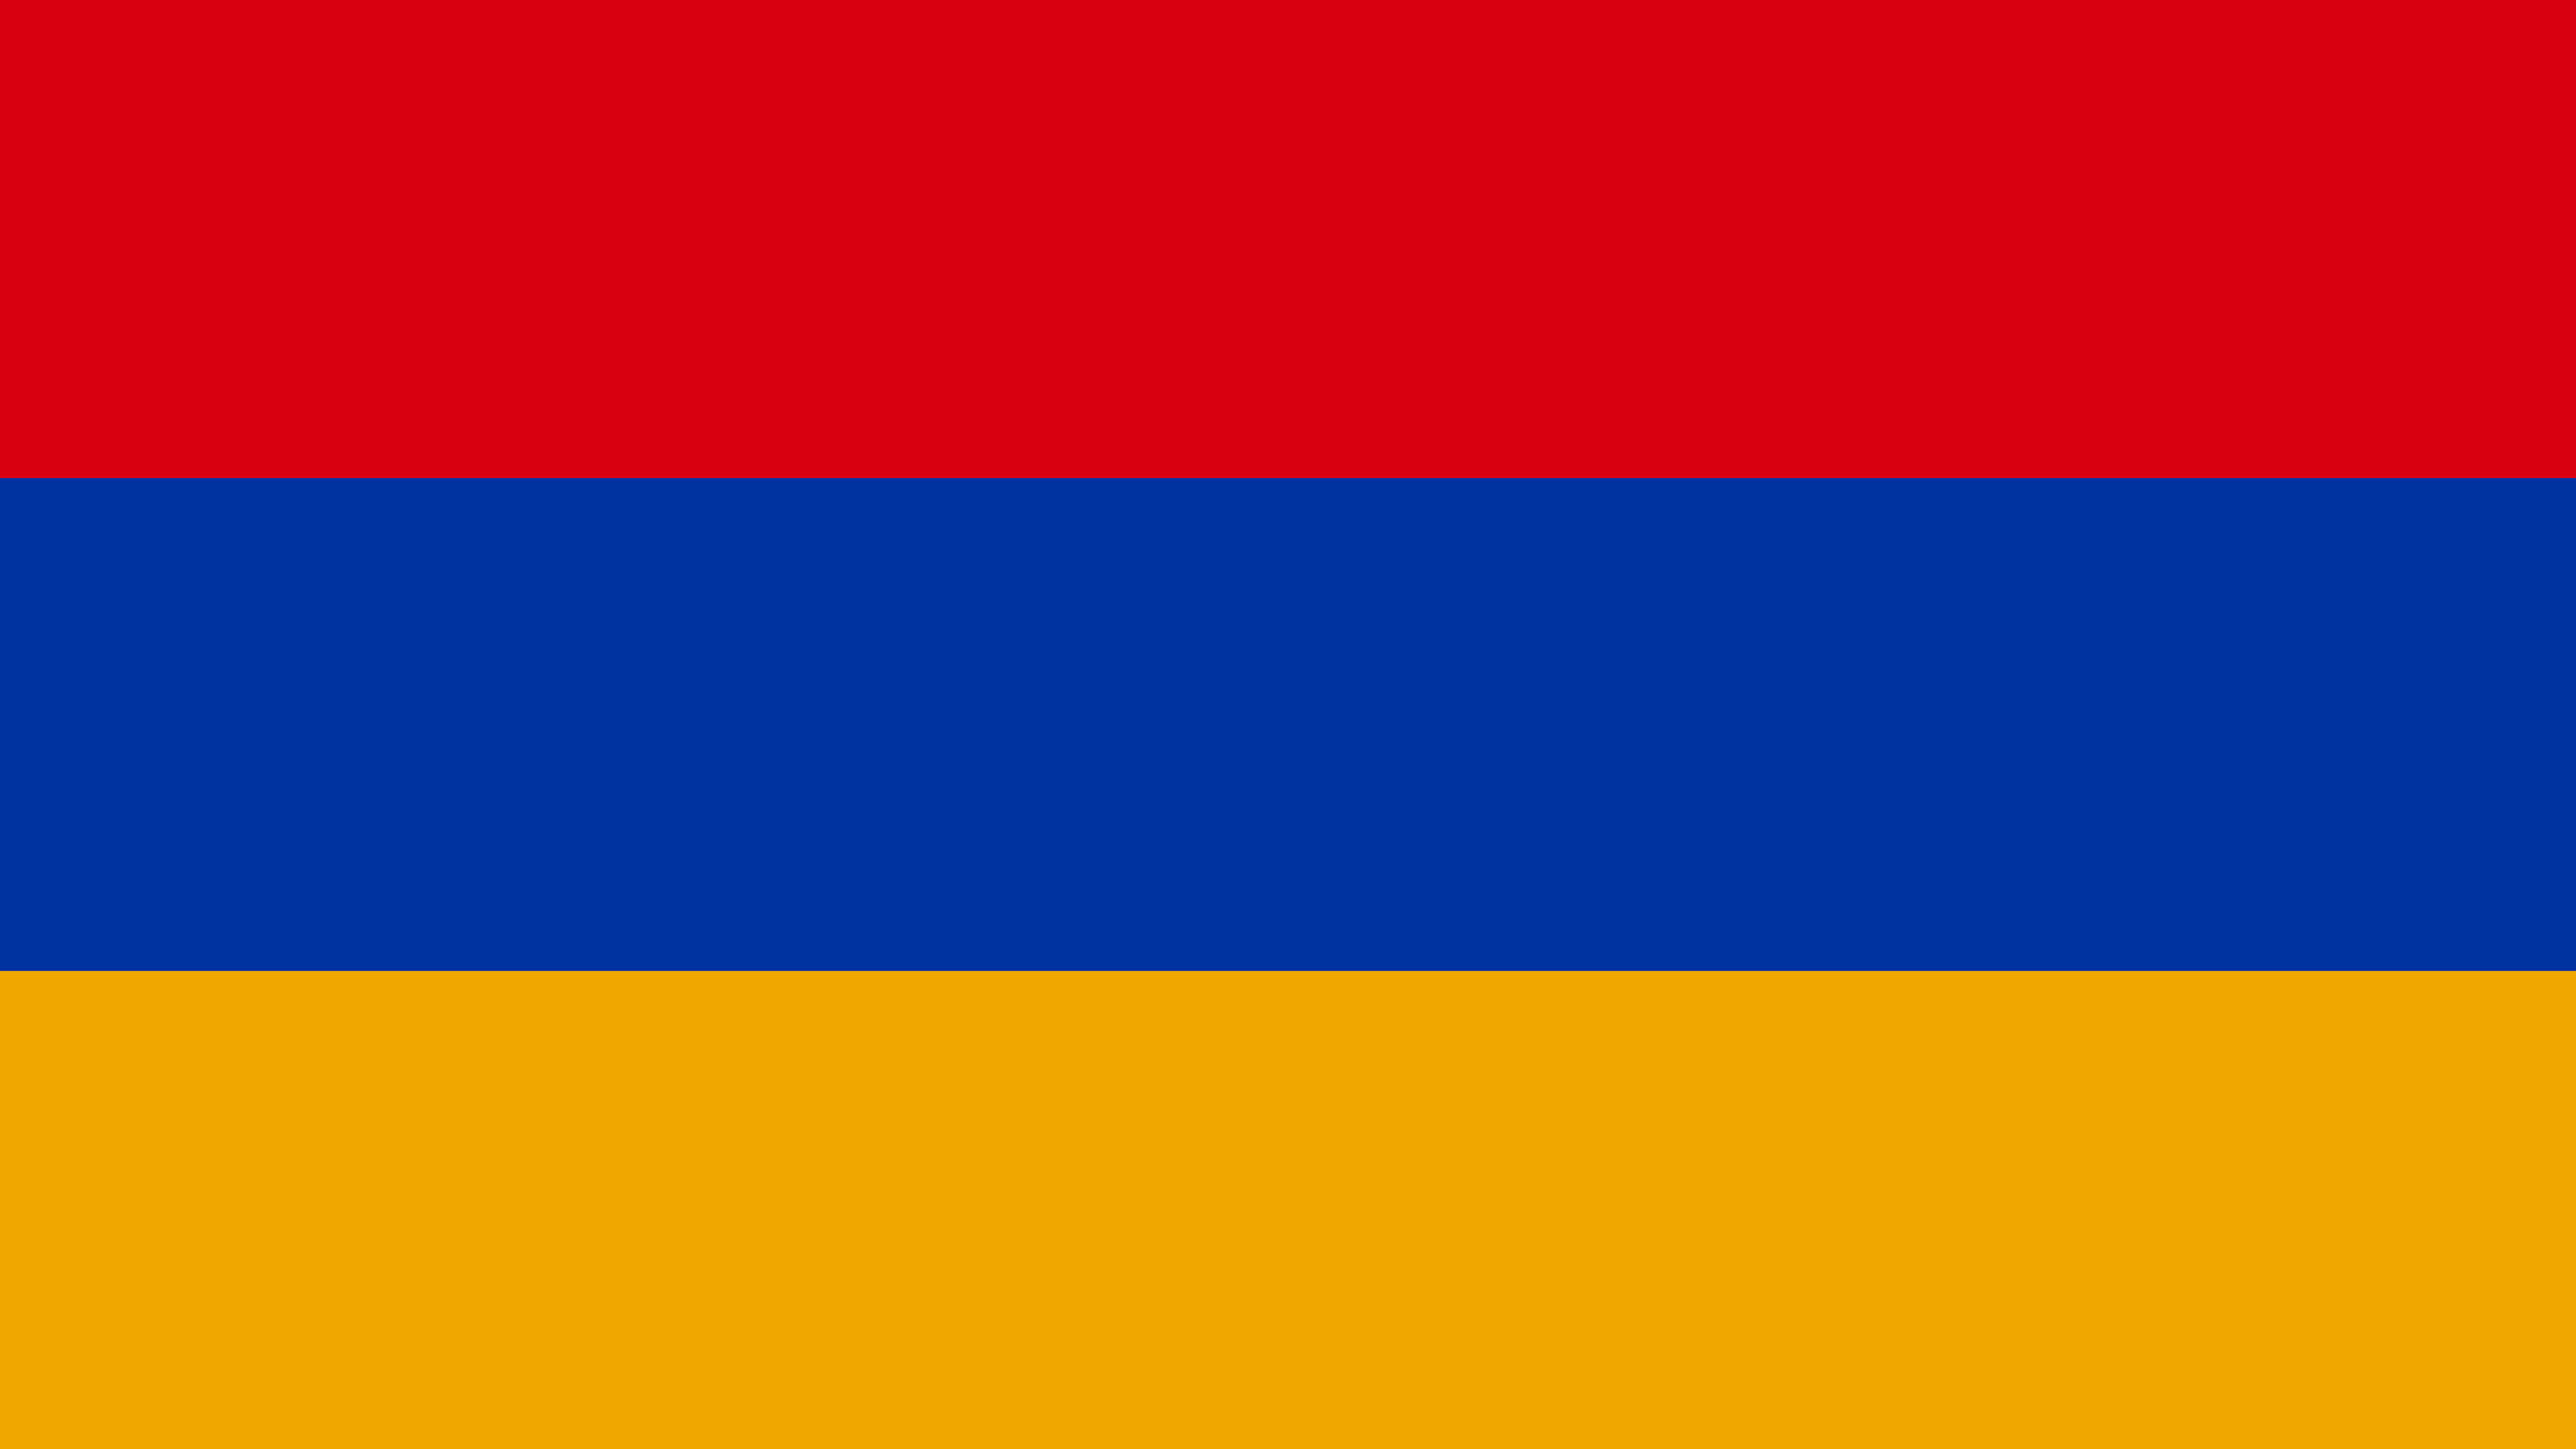 armenia flag uhd 4k wallpaper